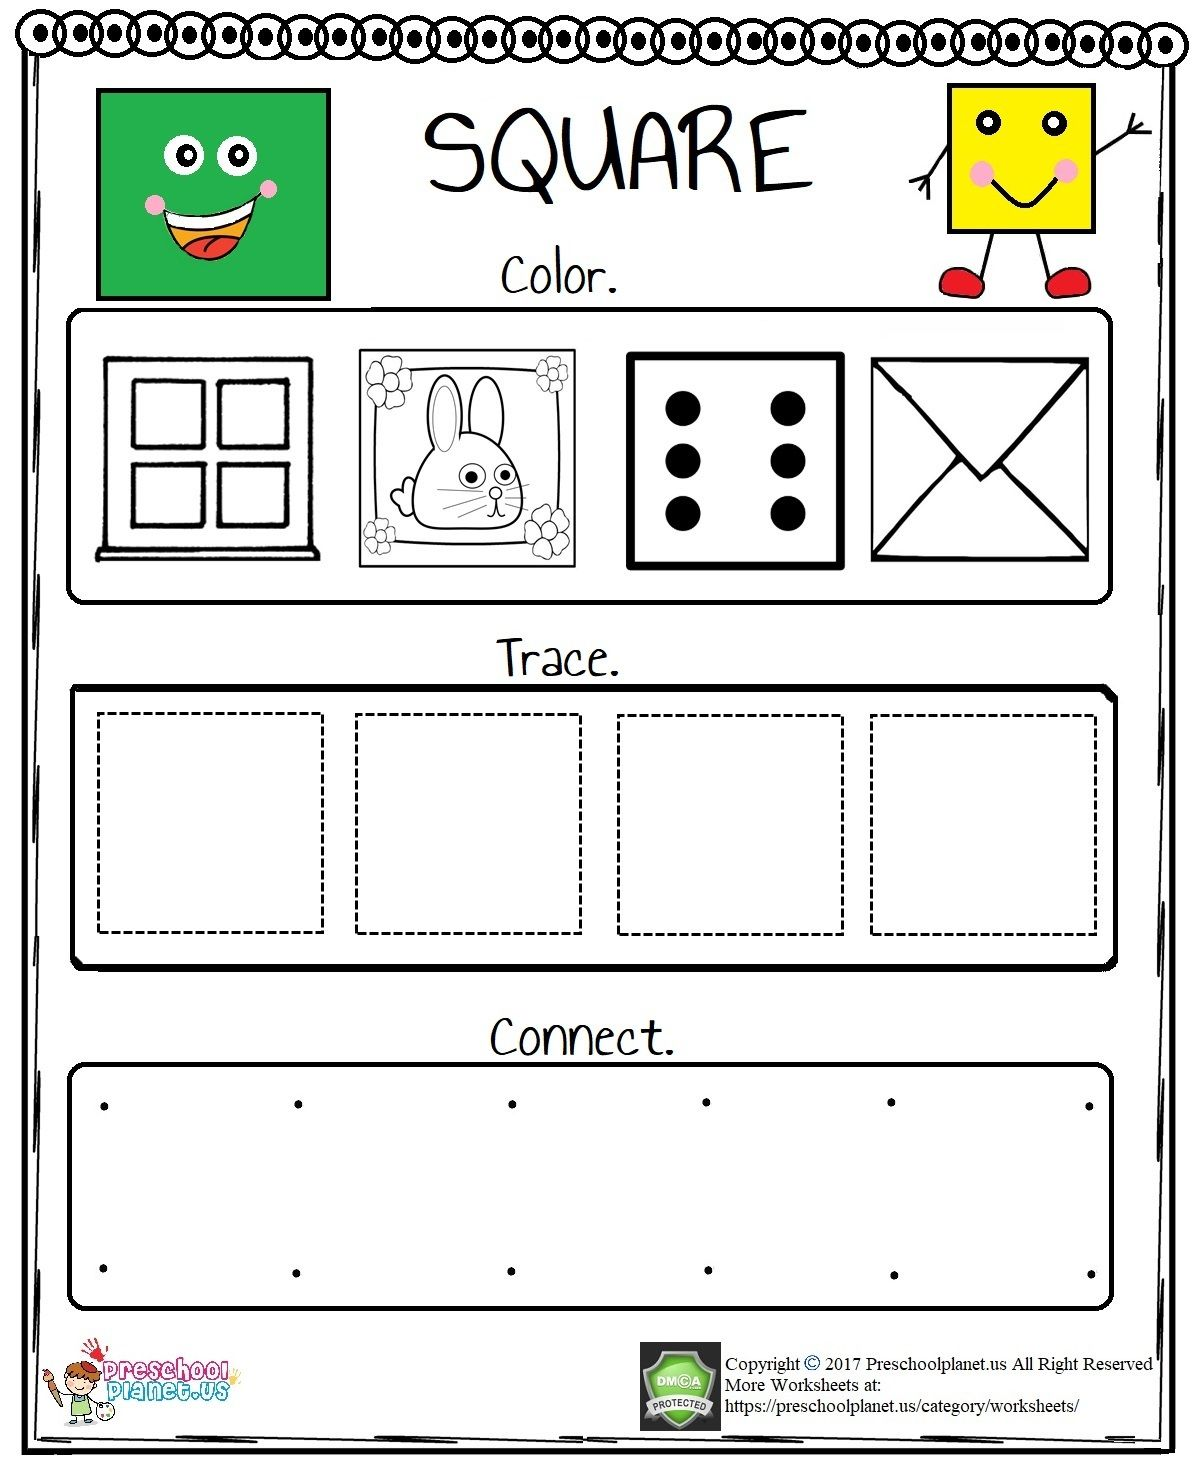 Printable Five Senses Worksheet Preschoolplanet In